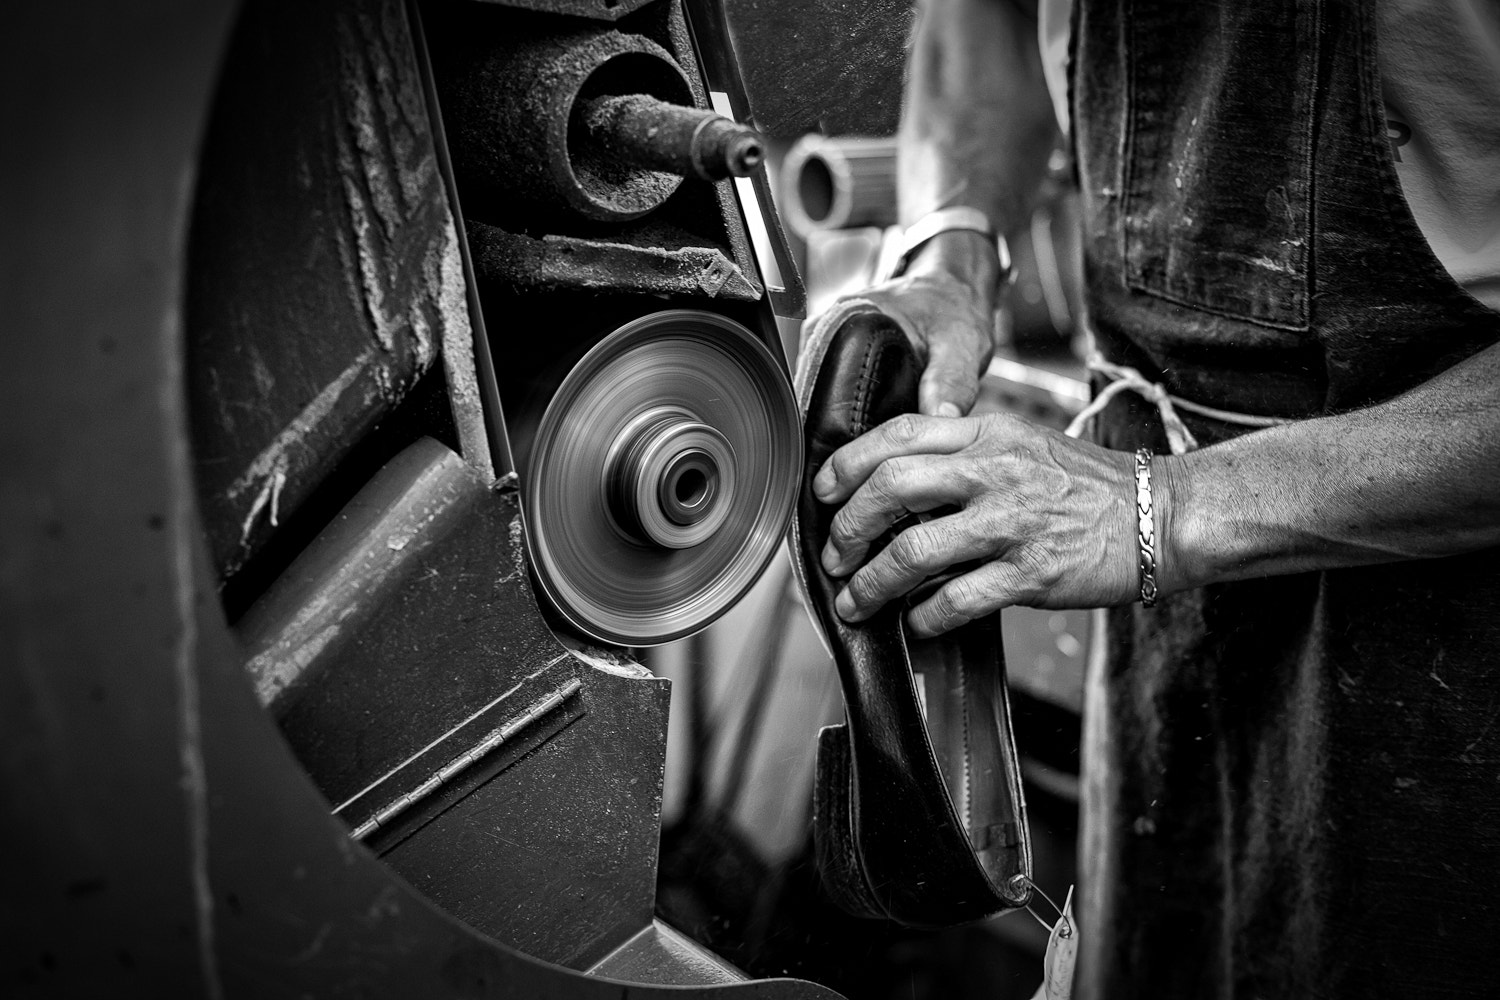 Photograph Shoe Finishing by Jerry Fleury on 500px